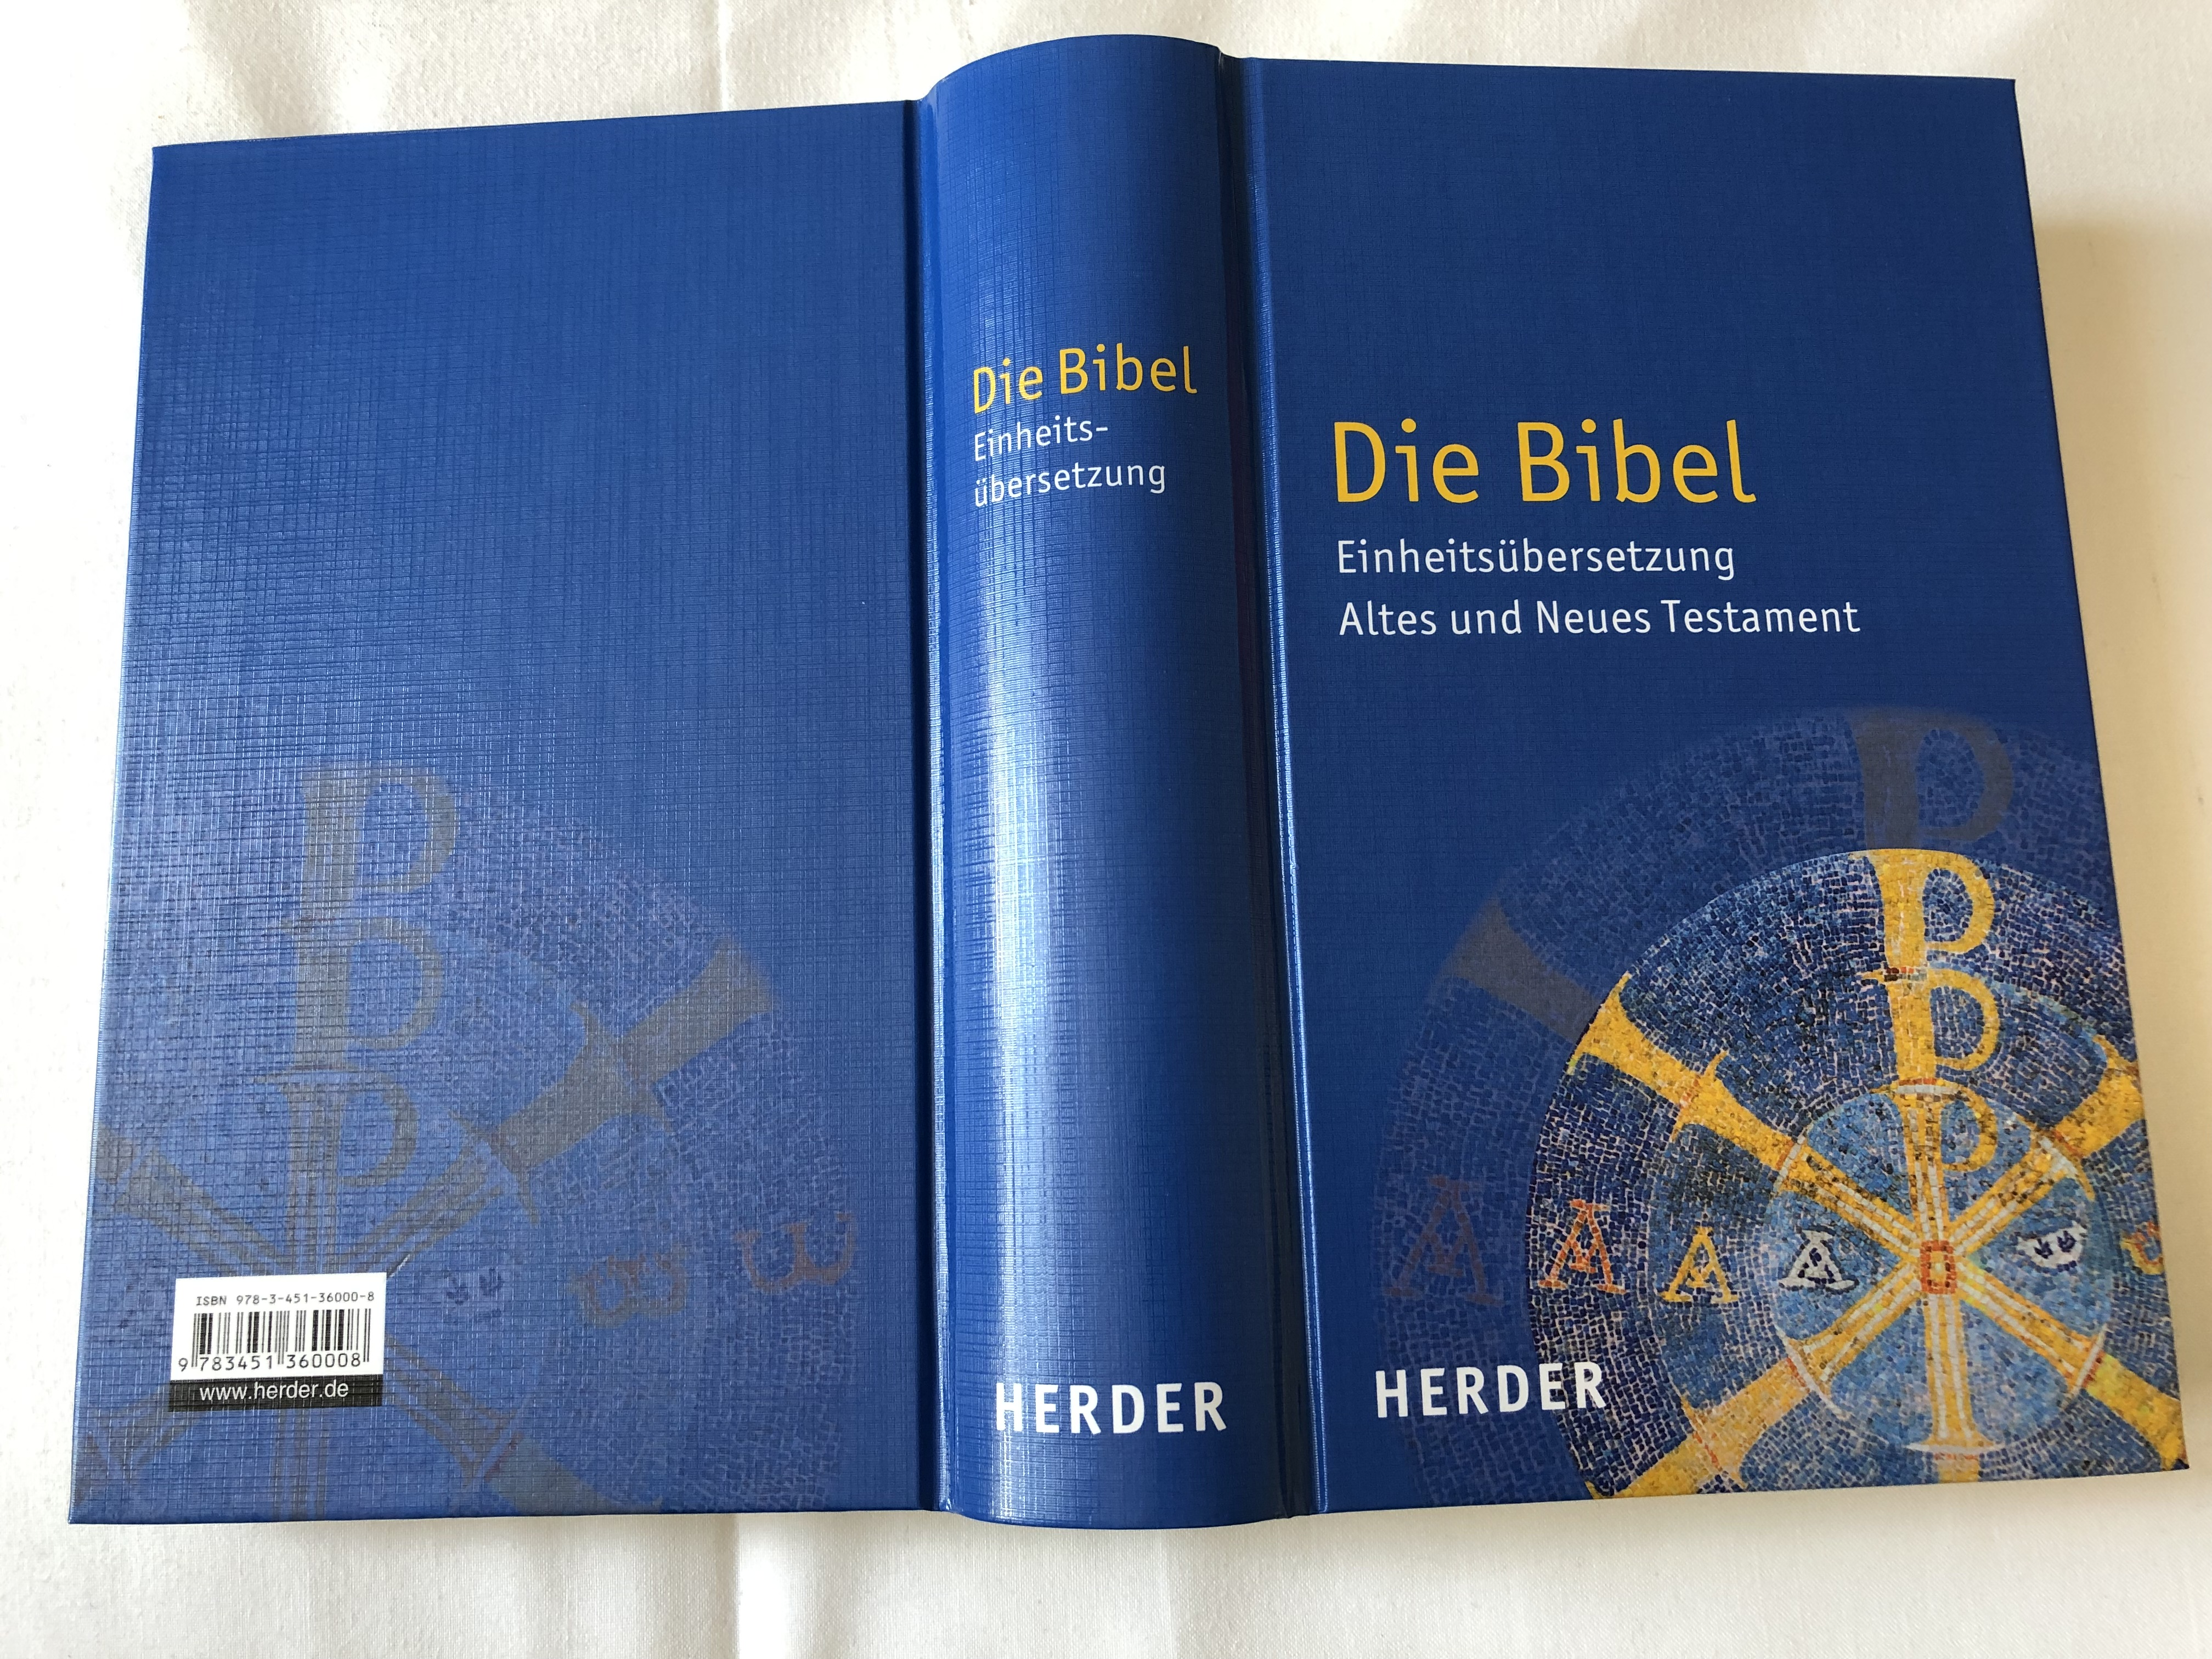 die-bibel-einheits-bersetzung-altes-und-neues-testament-german-language-holy-bible-unitary-translation-contains-deuterocanonical-books-with-book-introductions-maps-notes-bible-history-timetable-hardcover-2016-herde-7471221-.jpg